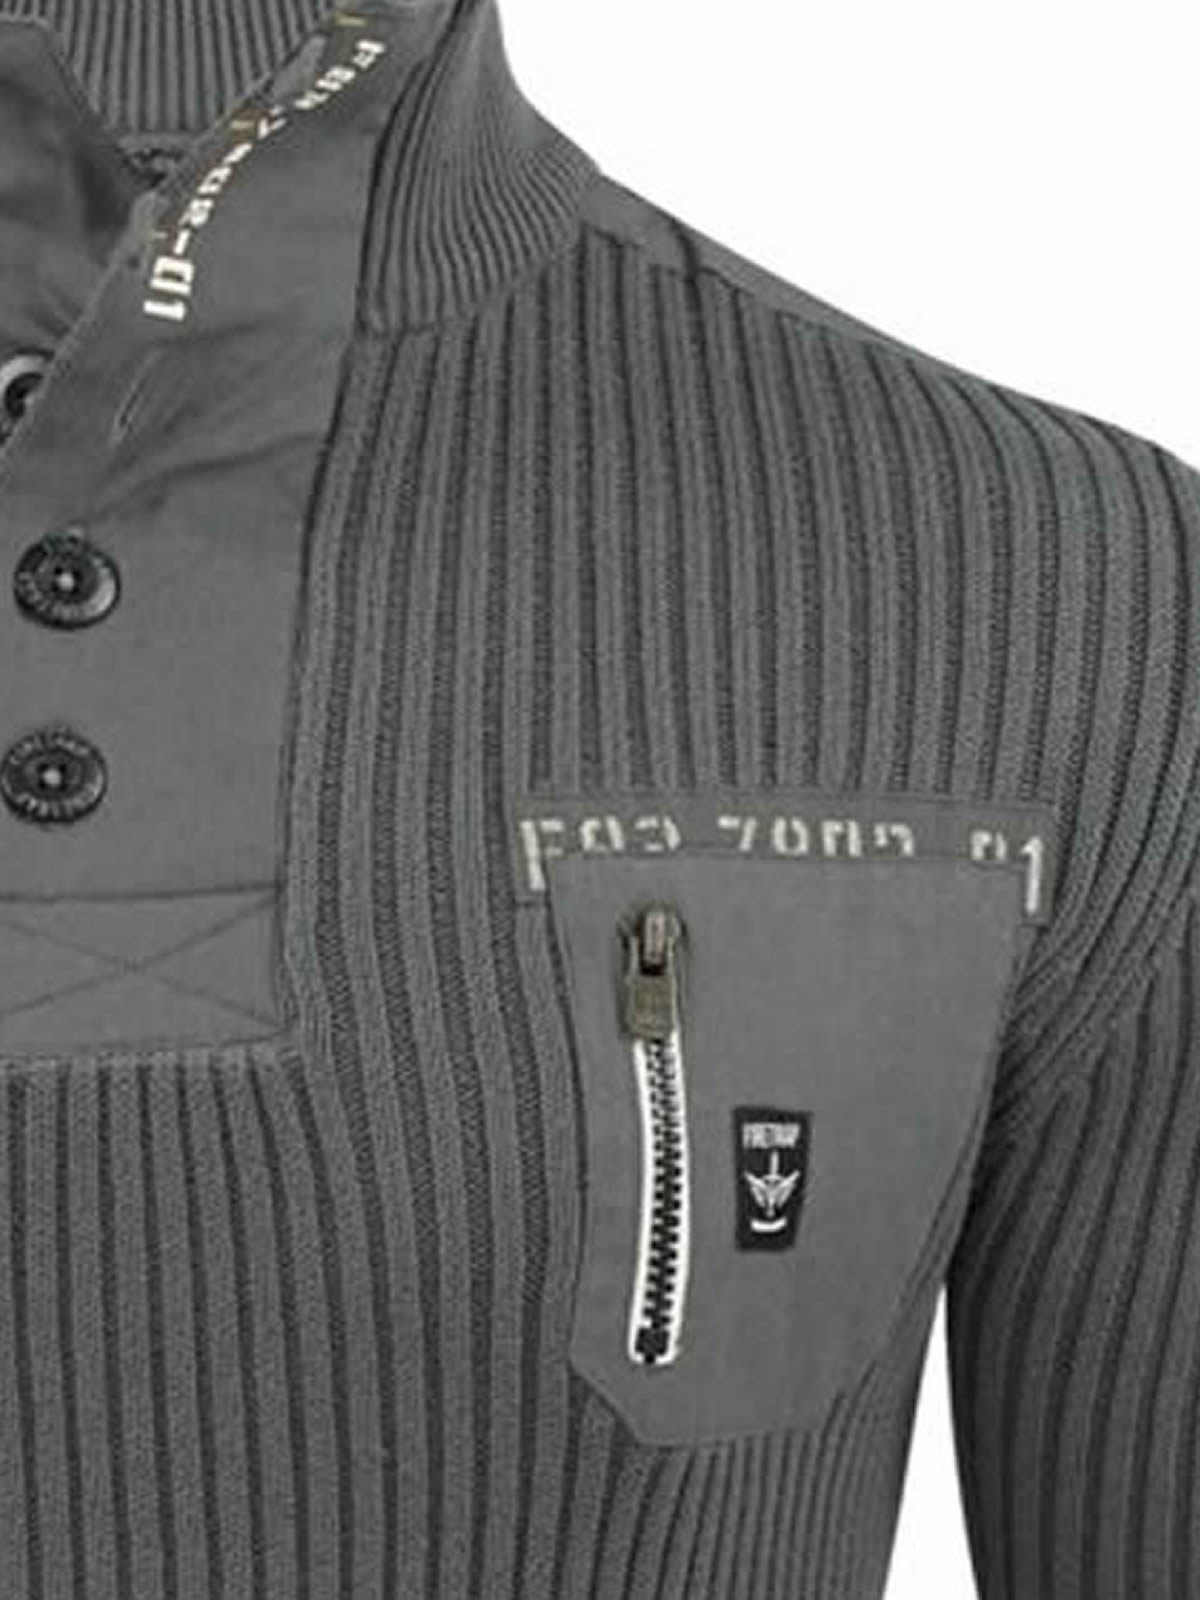 Men's Knitwear Whether it's a lightweight crew neck for warmer days or a roll neck for the colder months, our knitwear collection features merino wool and Grade-A .